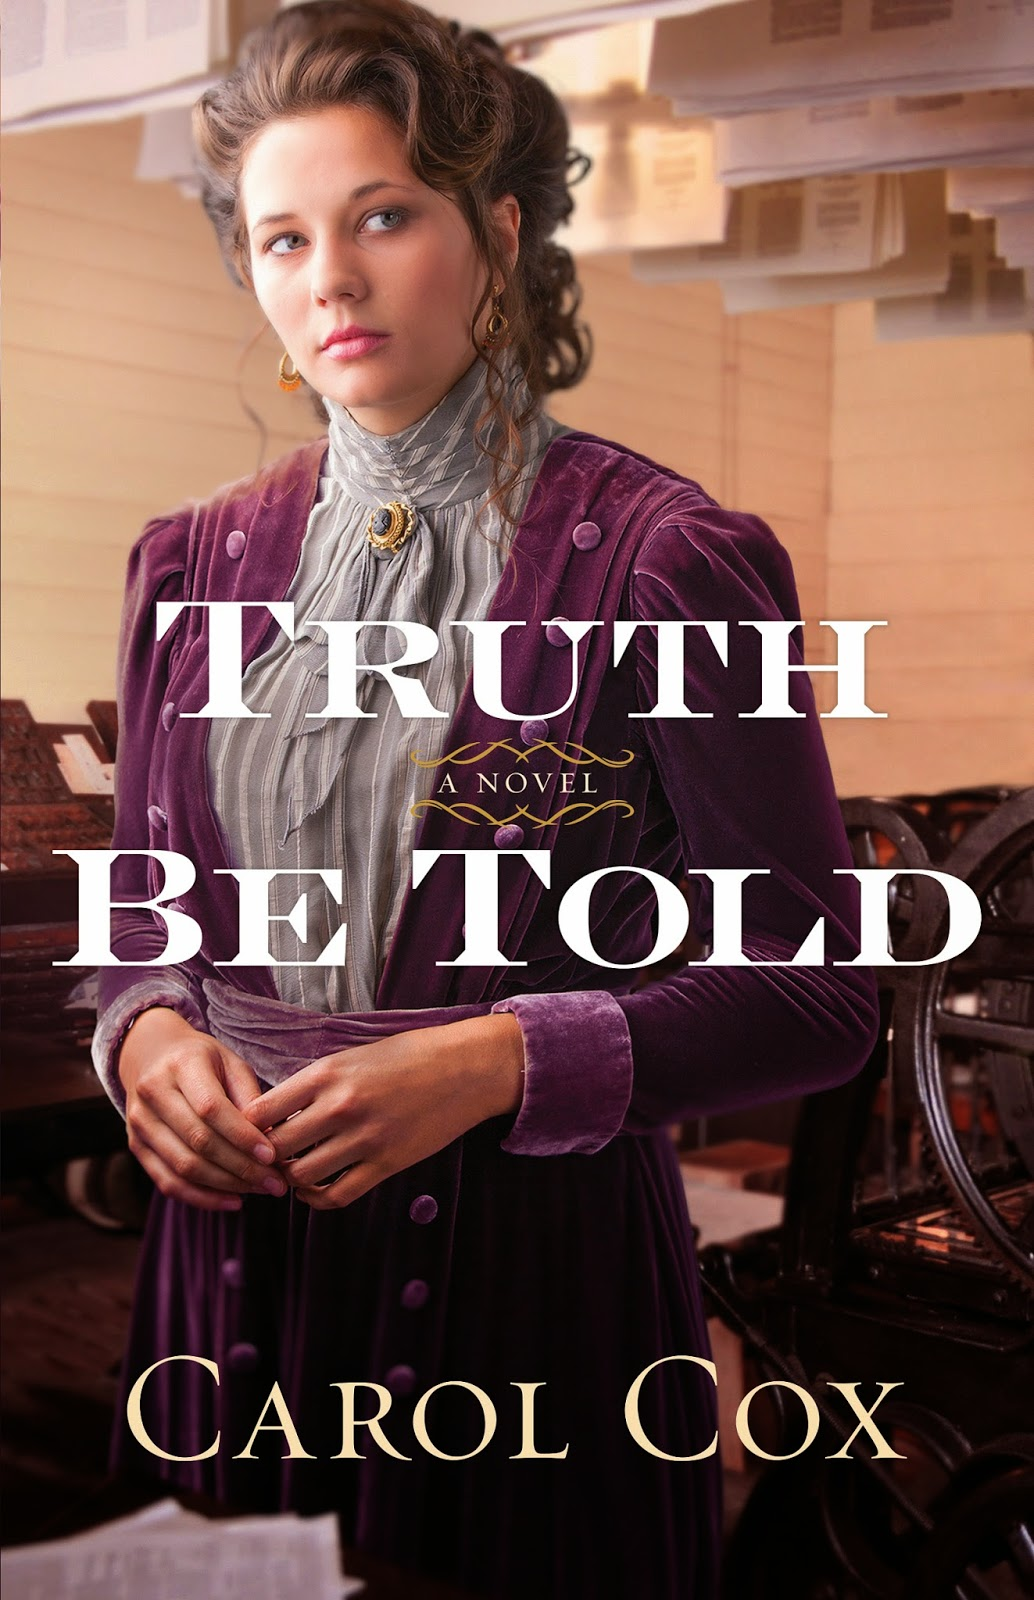 book review of Truth Be Told by Carol Cox (Bethany House) by papertapepins